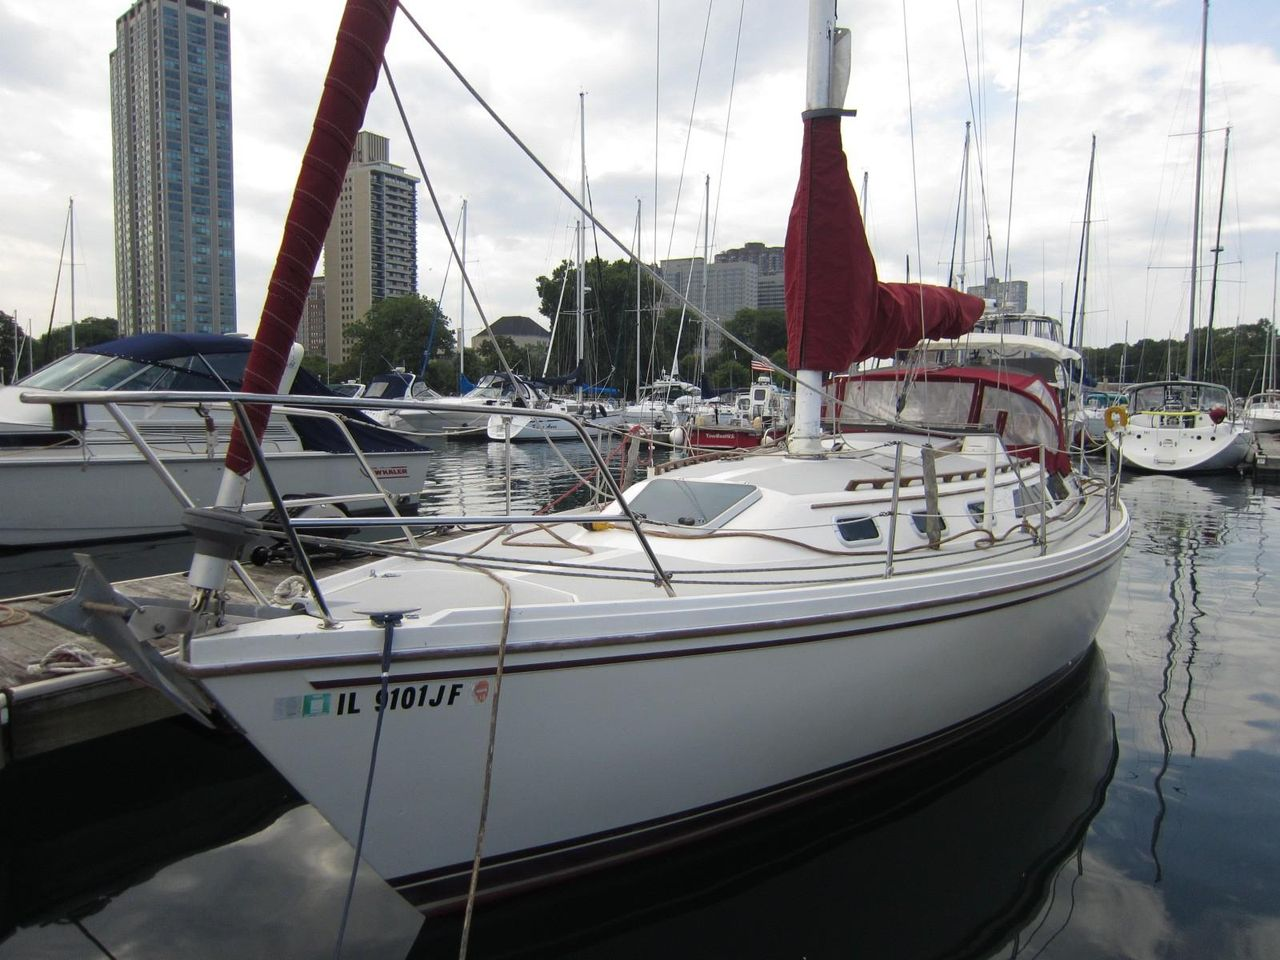 1989 Used Catalina 34 Cruiser Sailboat For Sale 29 000